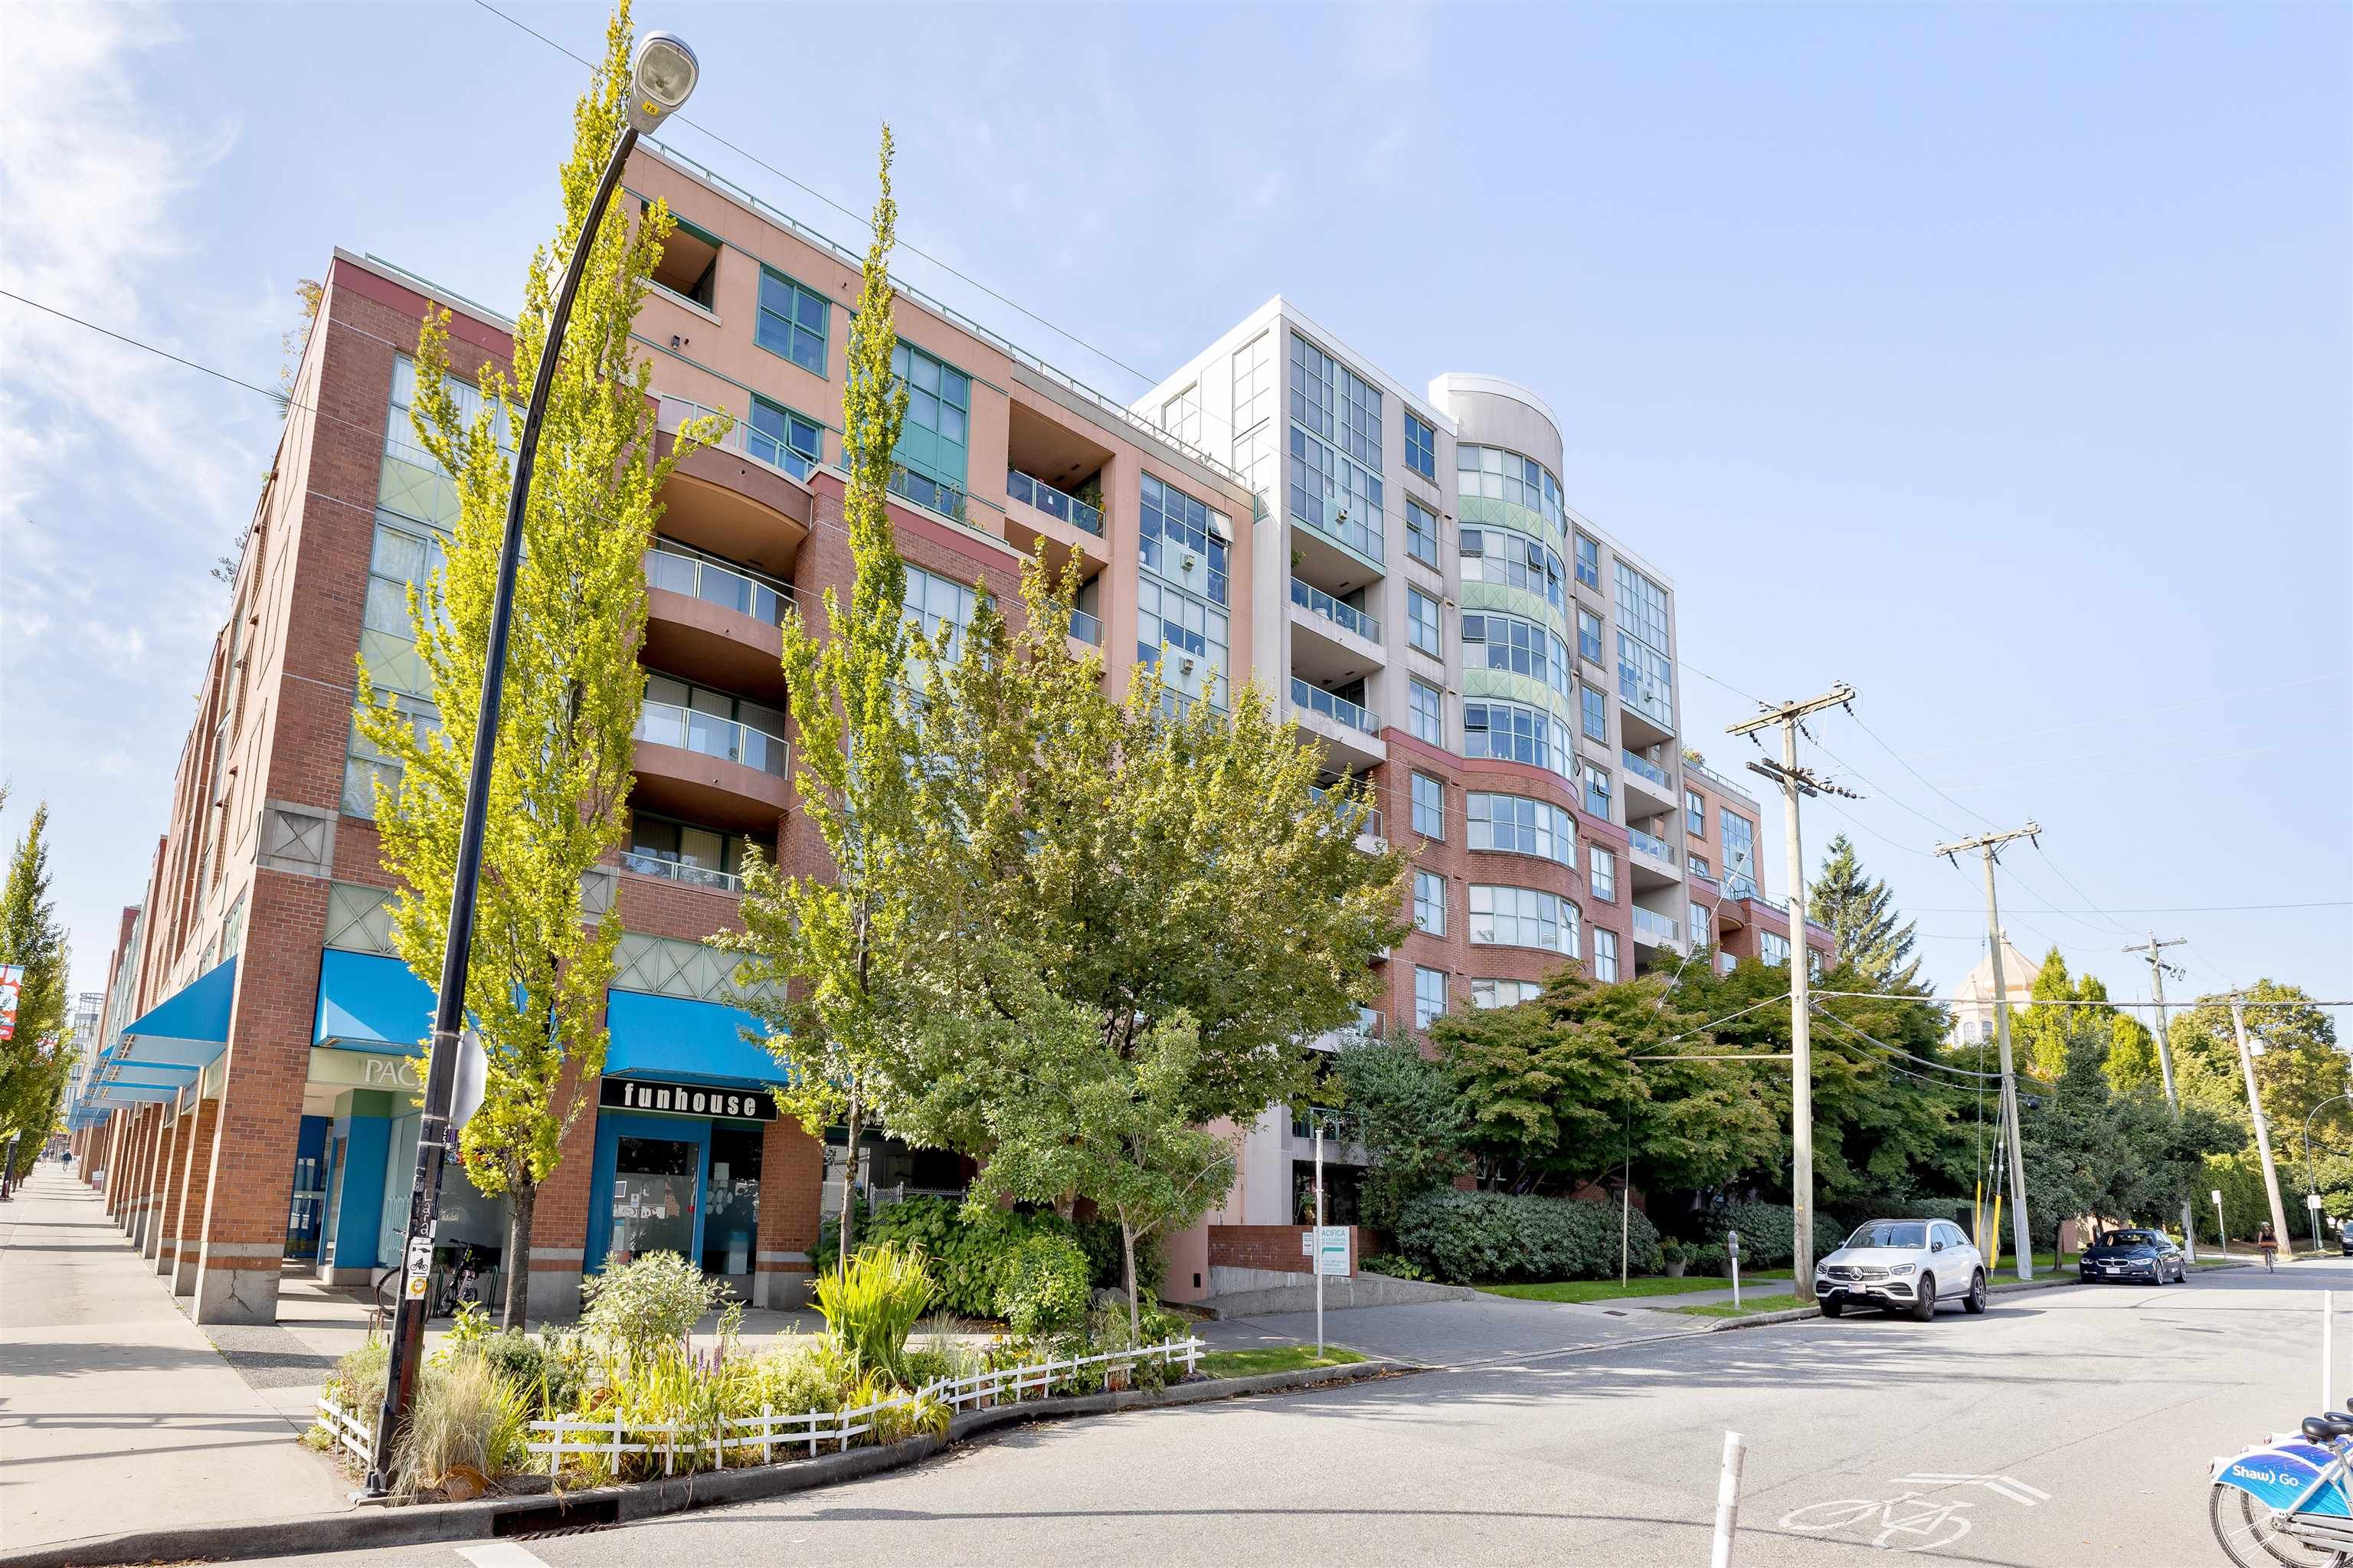 """Main Photo: 701 518 W 14TH Avenue in Vancouver: Fairview VW Condo for sale in """"PACIFICA"""" (Vancouver West)  : MLS®# R2614873"""